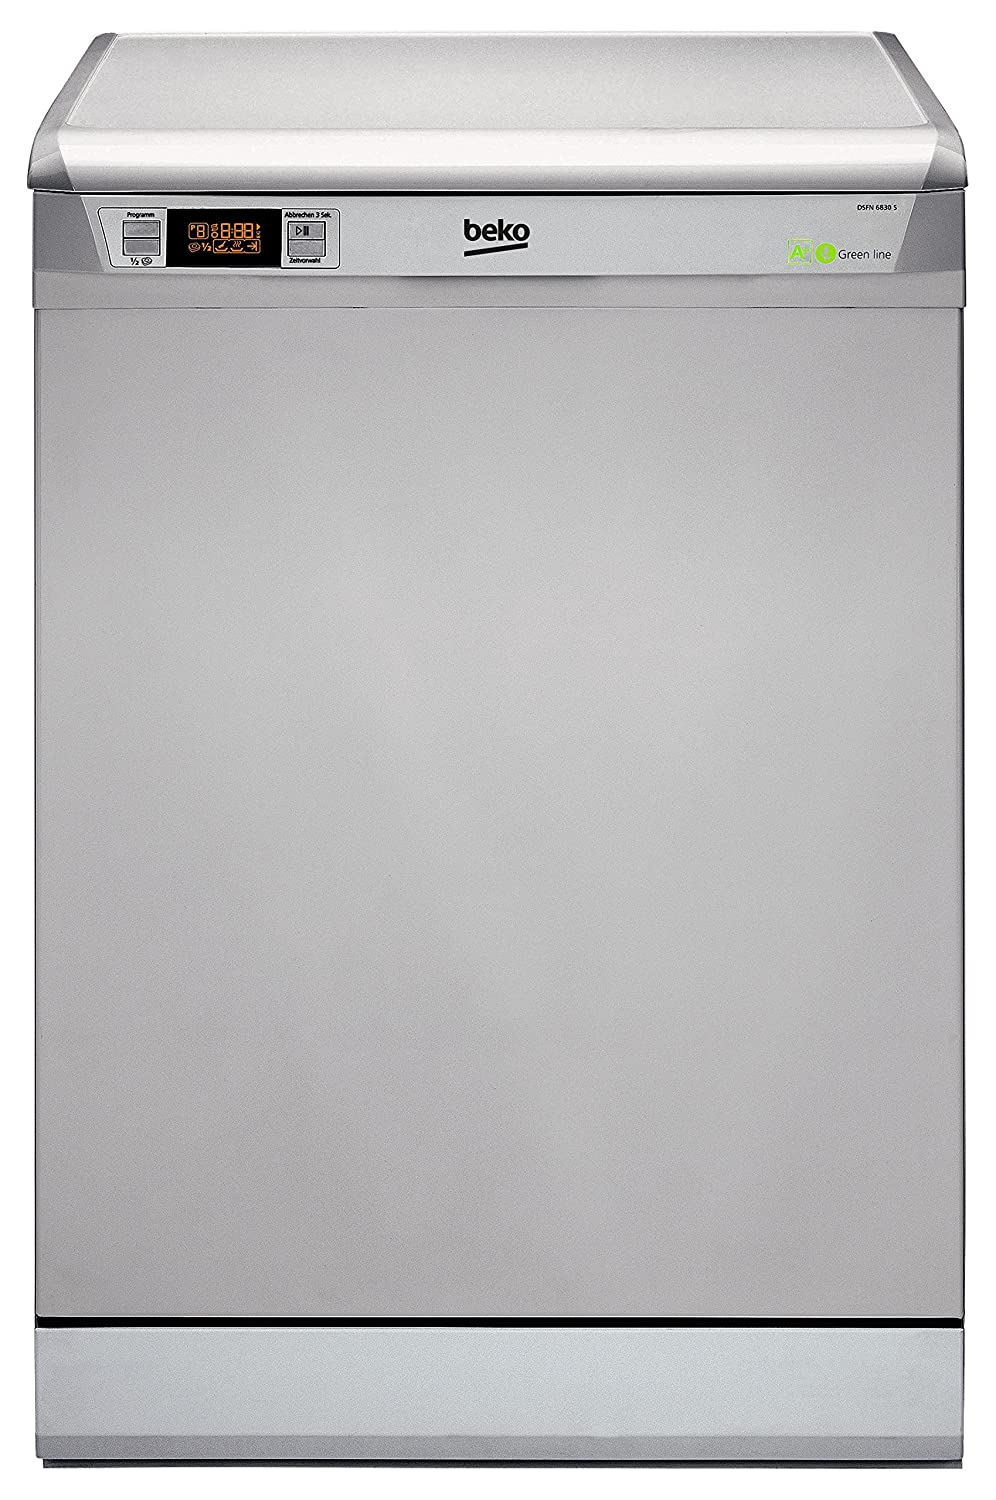 Beko DSFN 6830 S - Lavavajillas (Independiente, Acero inoxidable ...